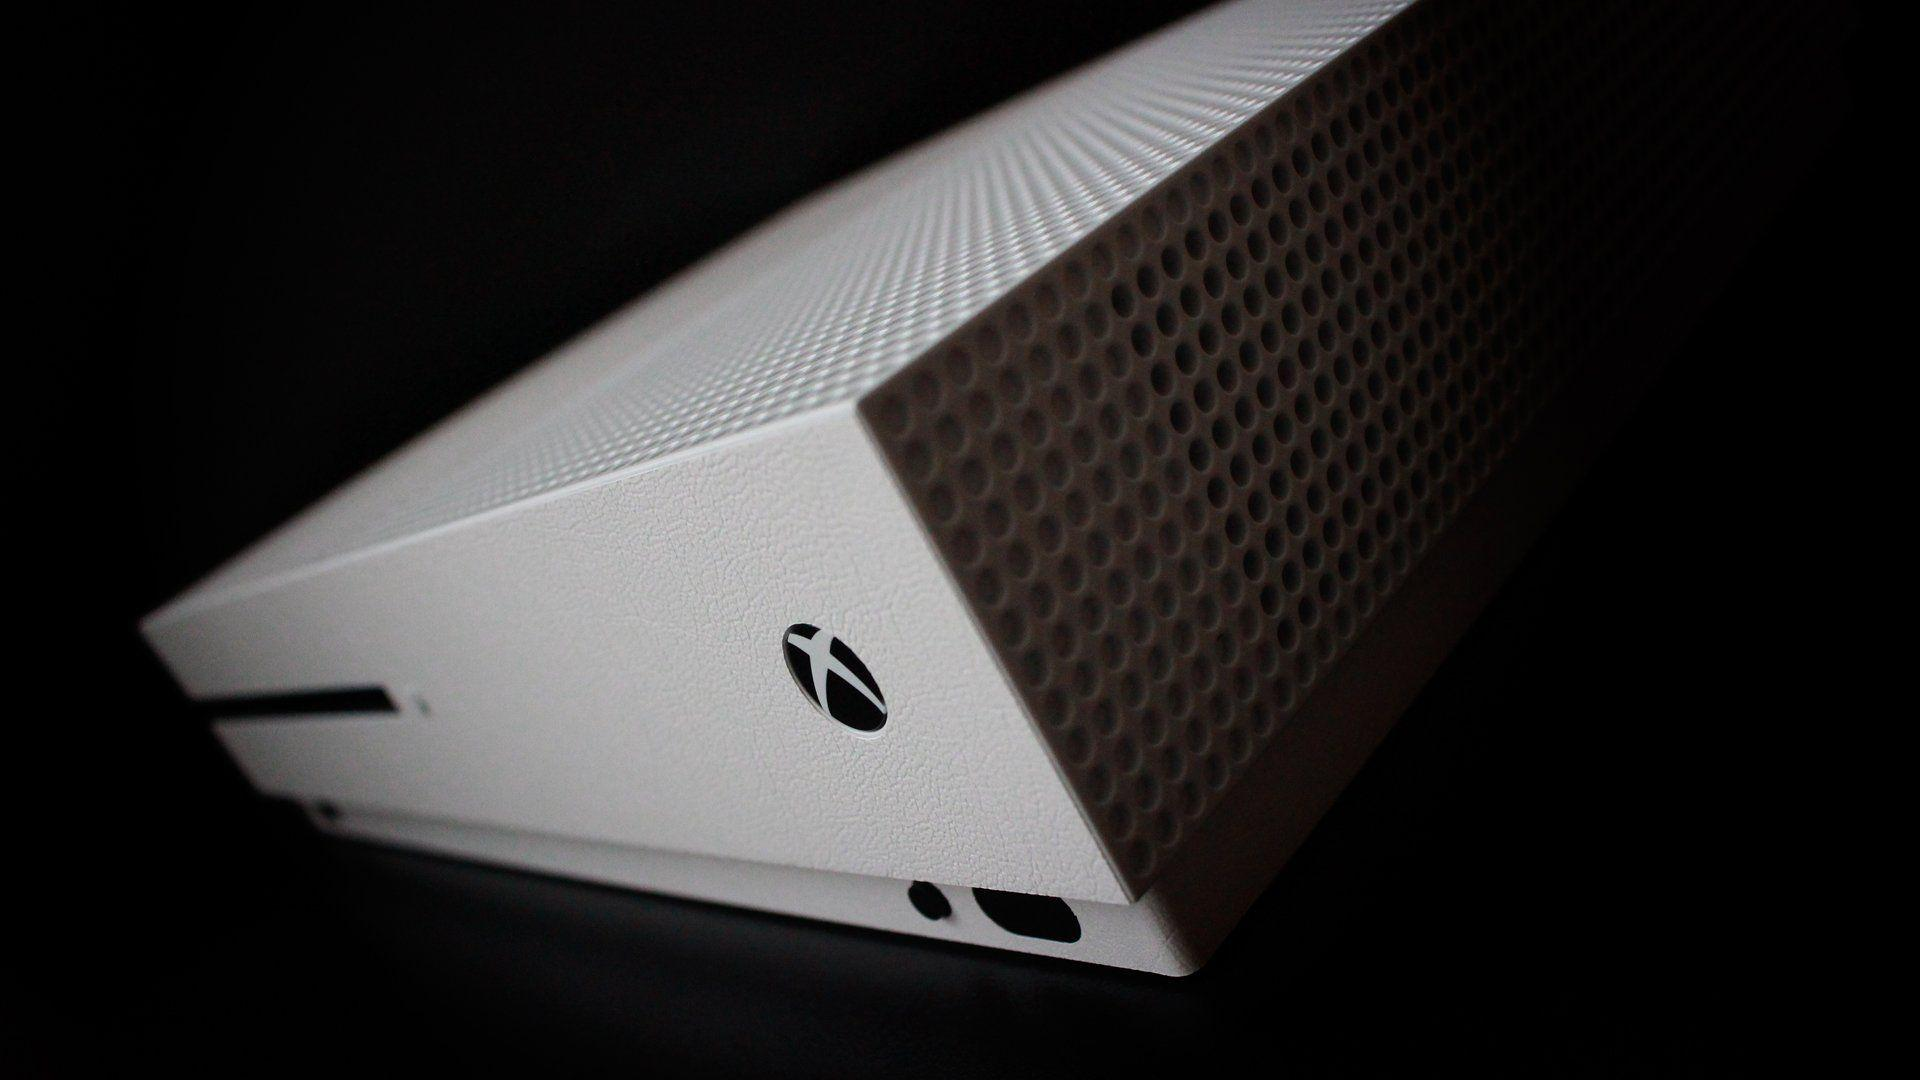 Xbox one s wallpapers wallpaper cave - Xbox one wallpaper template ...